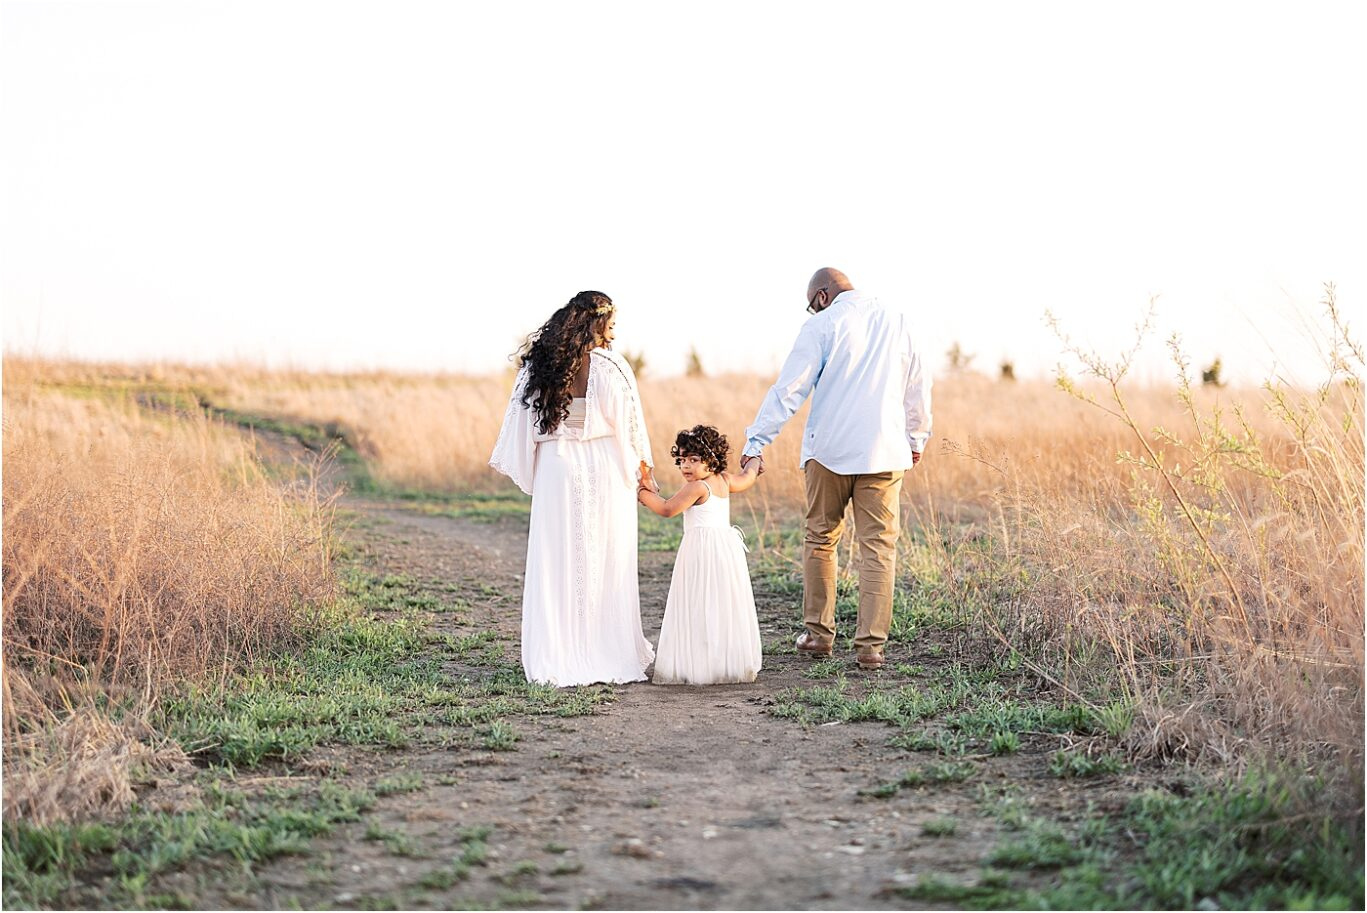 Sunset maternity session with Lindsay Konopa Photography.